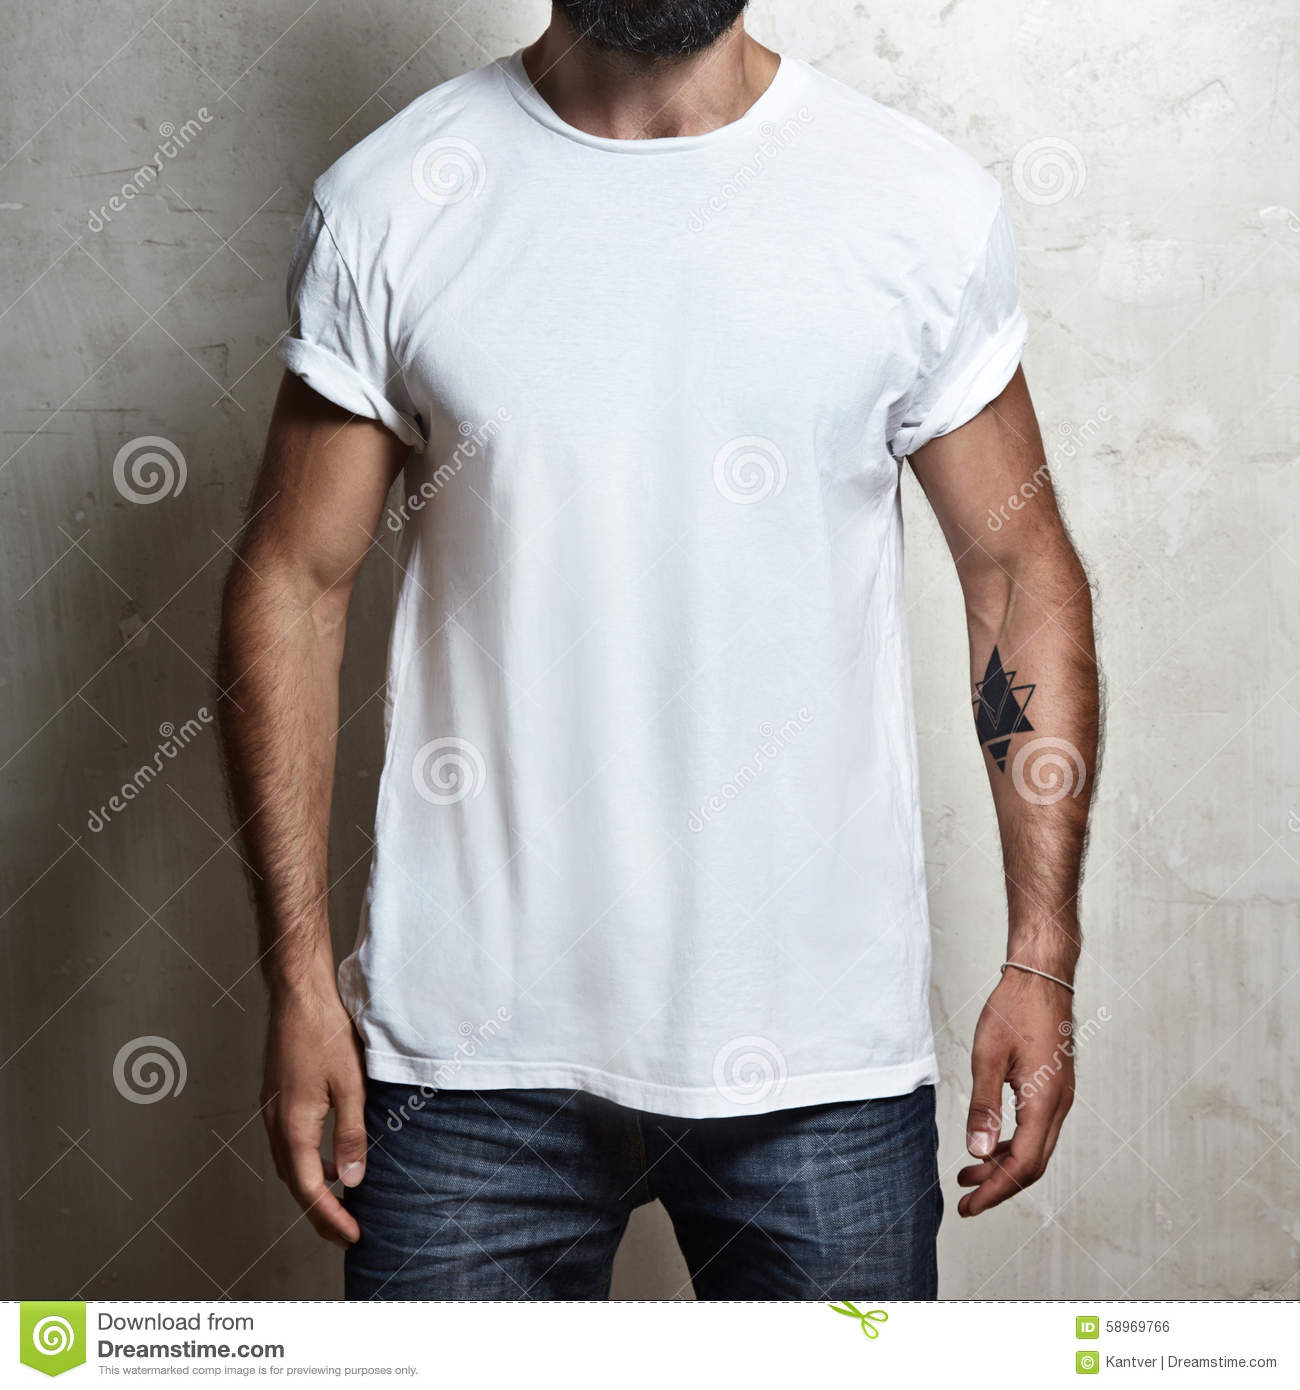 Muscular Guy Wearing White T-shirt Stock Photo - Image: 58969766